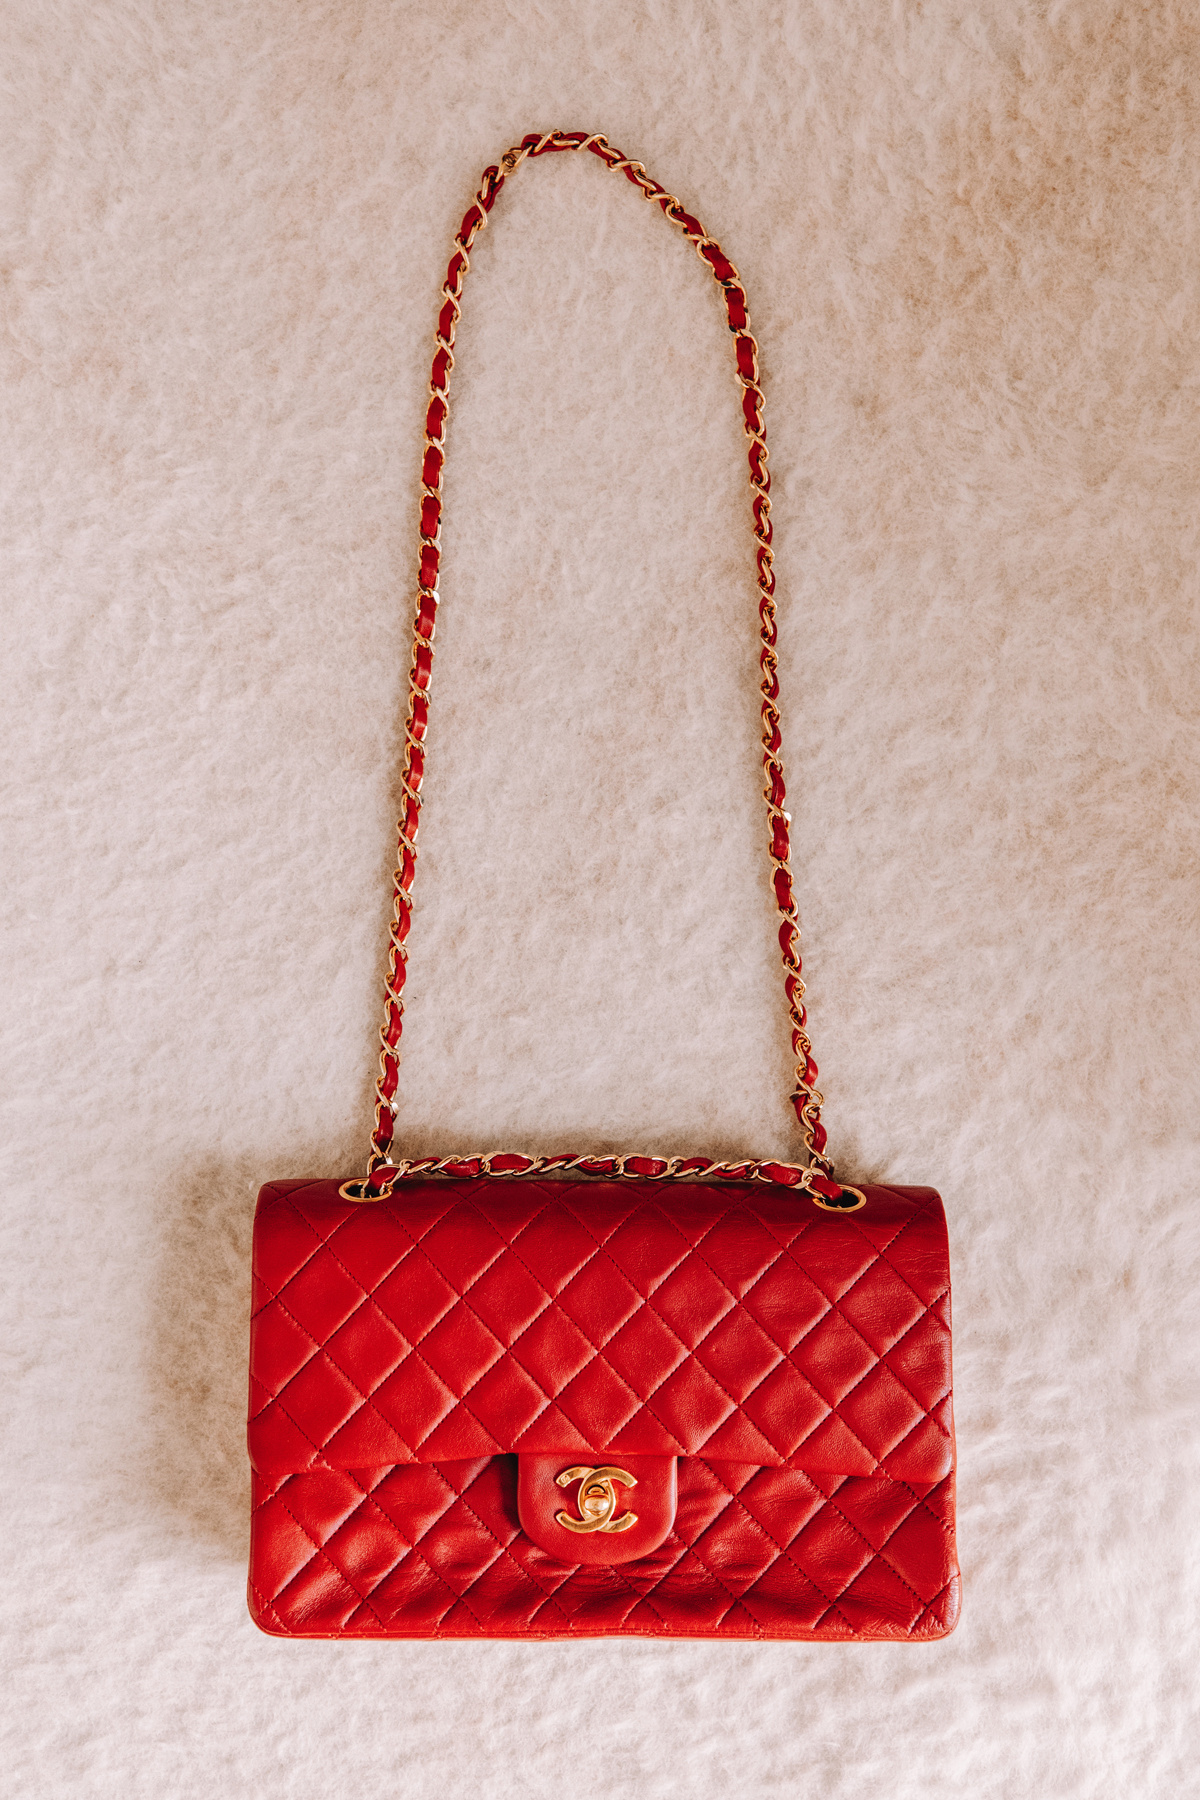 Fashion Jackson Chanel Lambskin Quilted Medium Double Flap Red